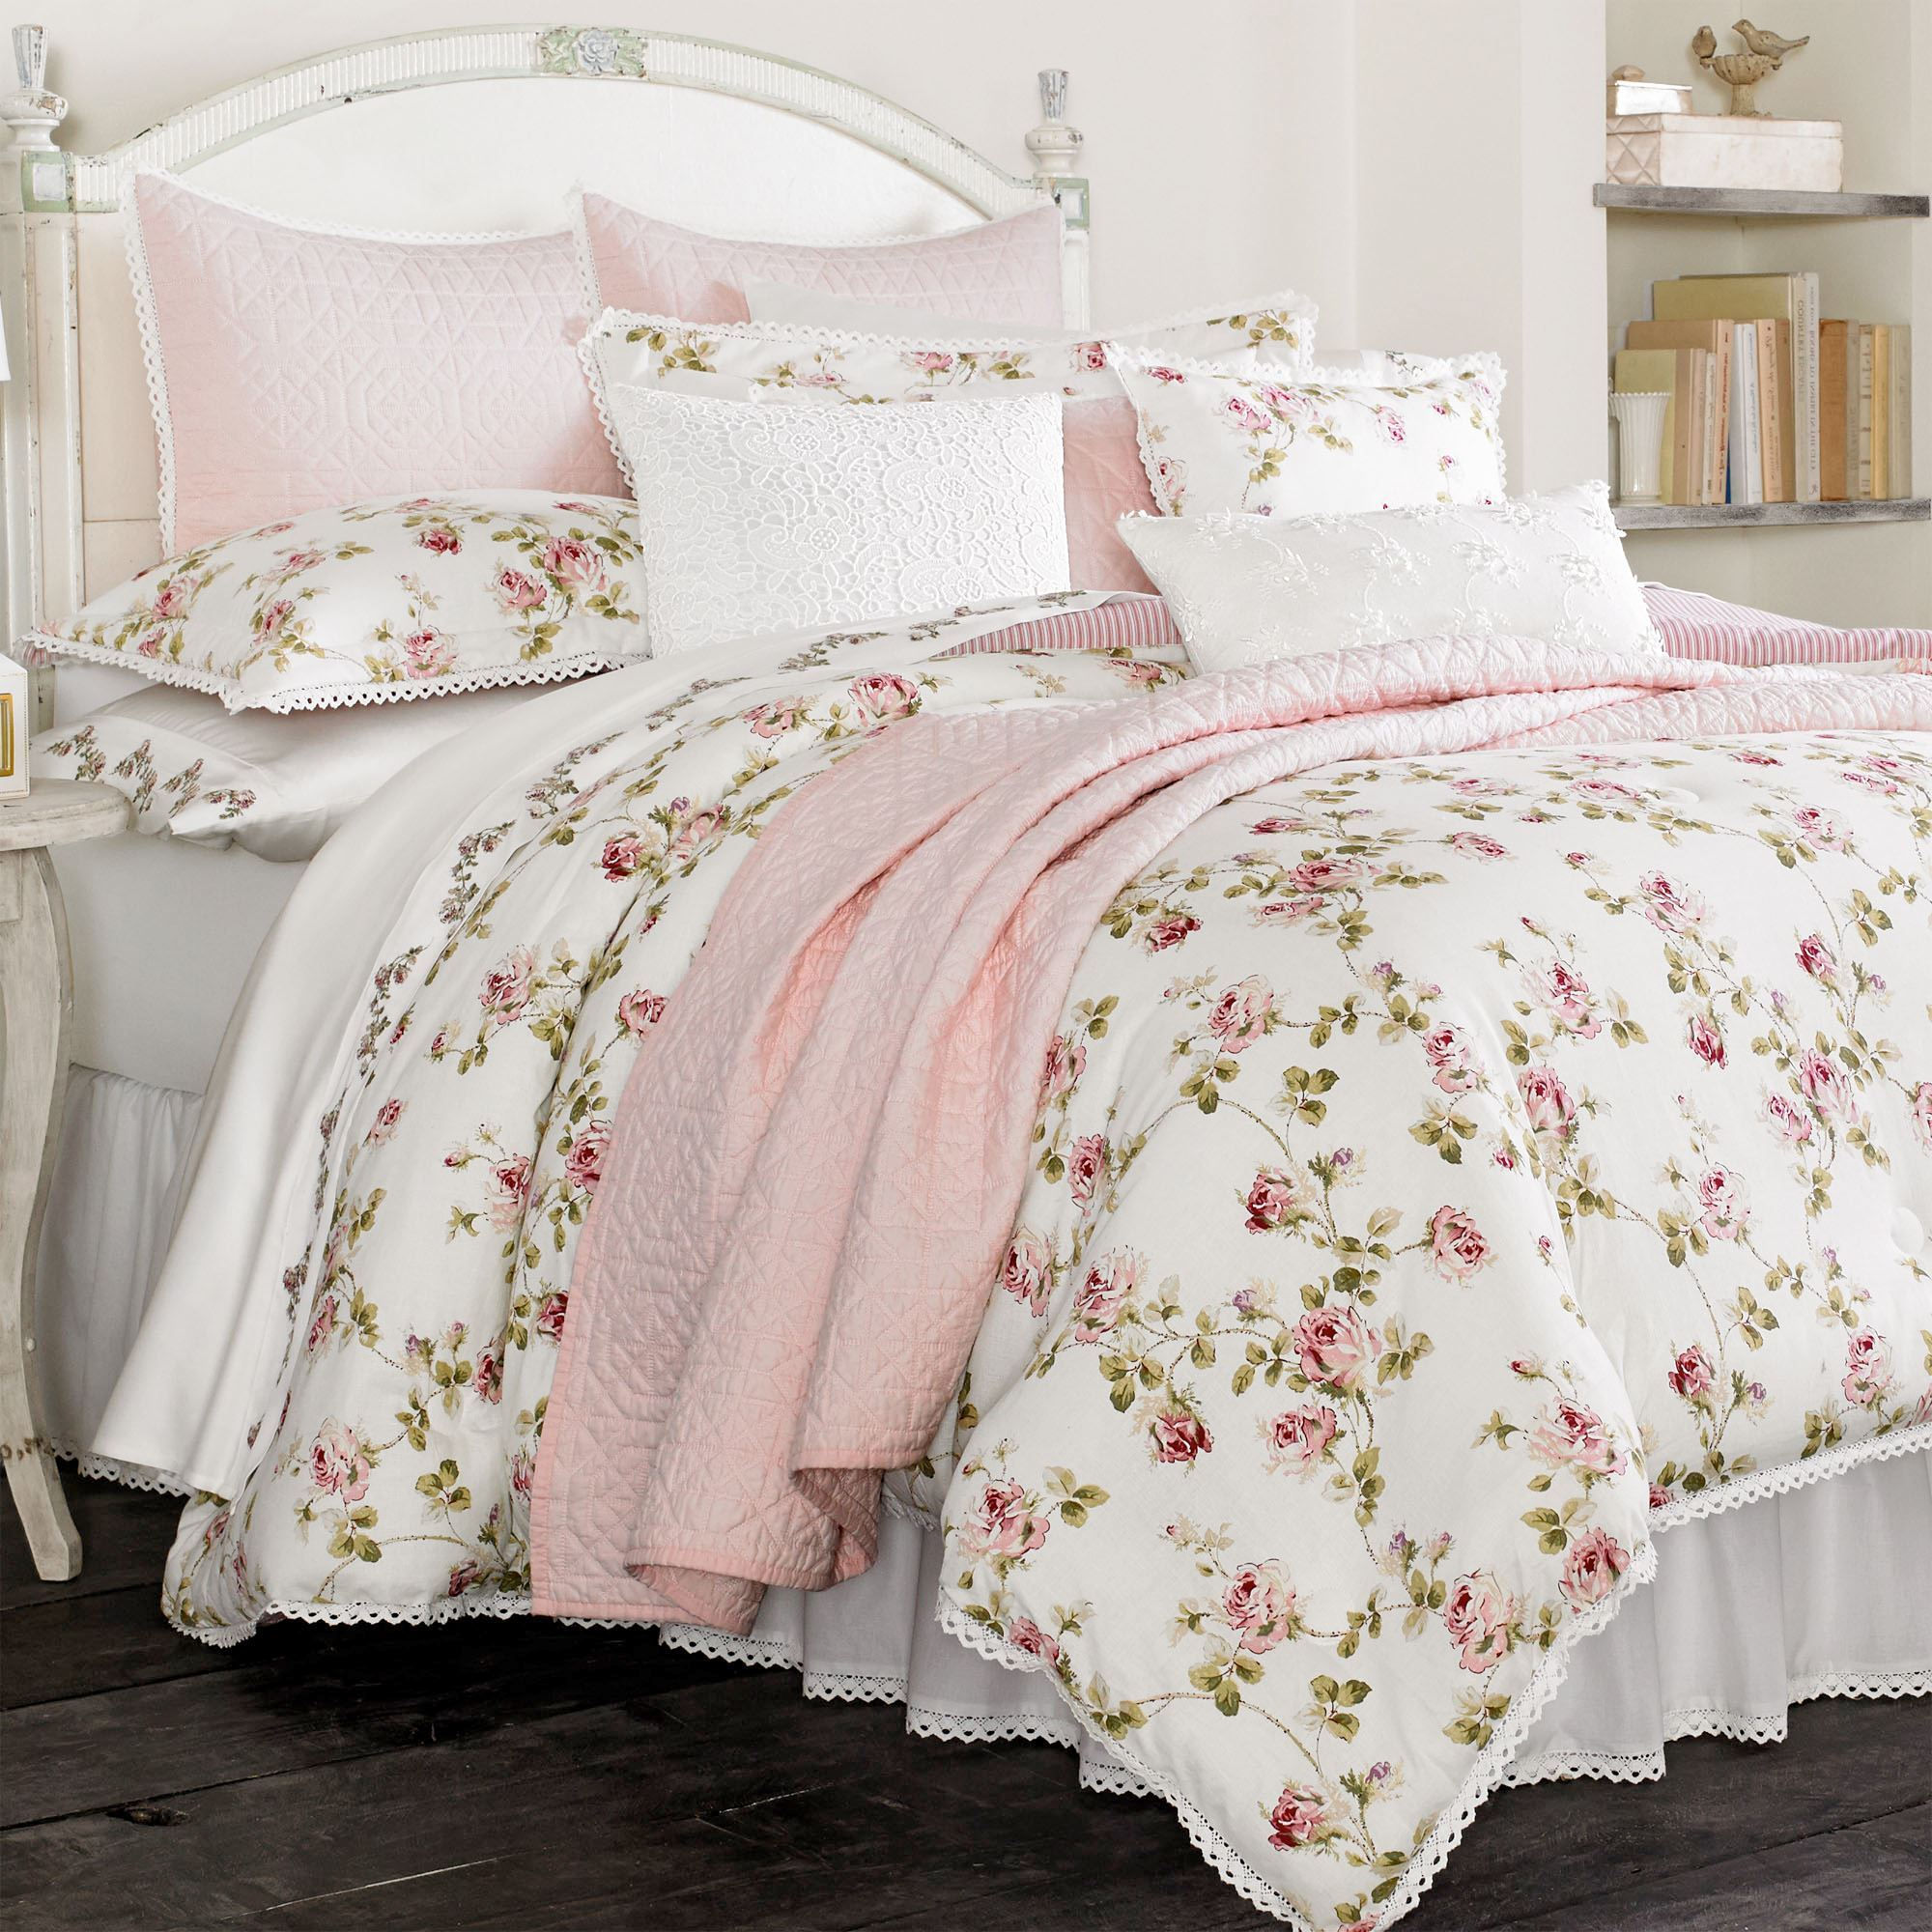 green girls design mint house for redoubtable twin bedding teen set bathroom intended and floral comforter coral teal your